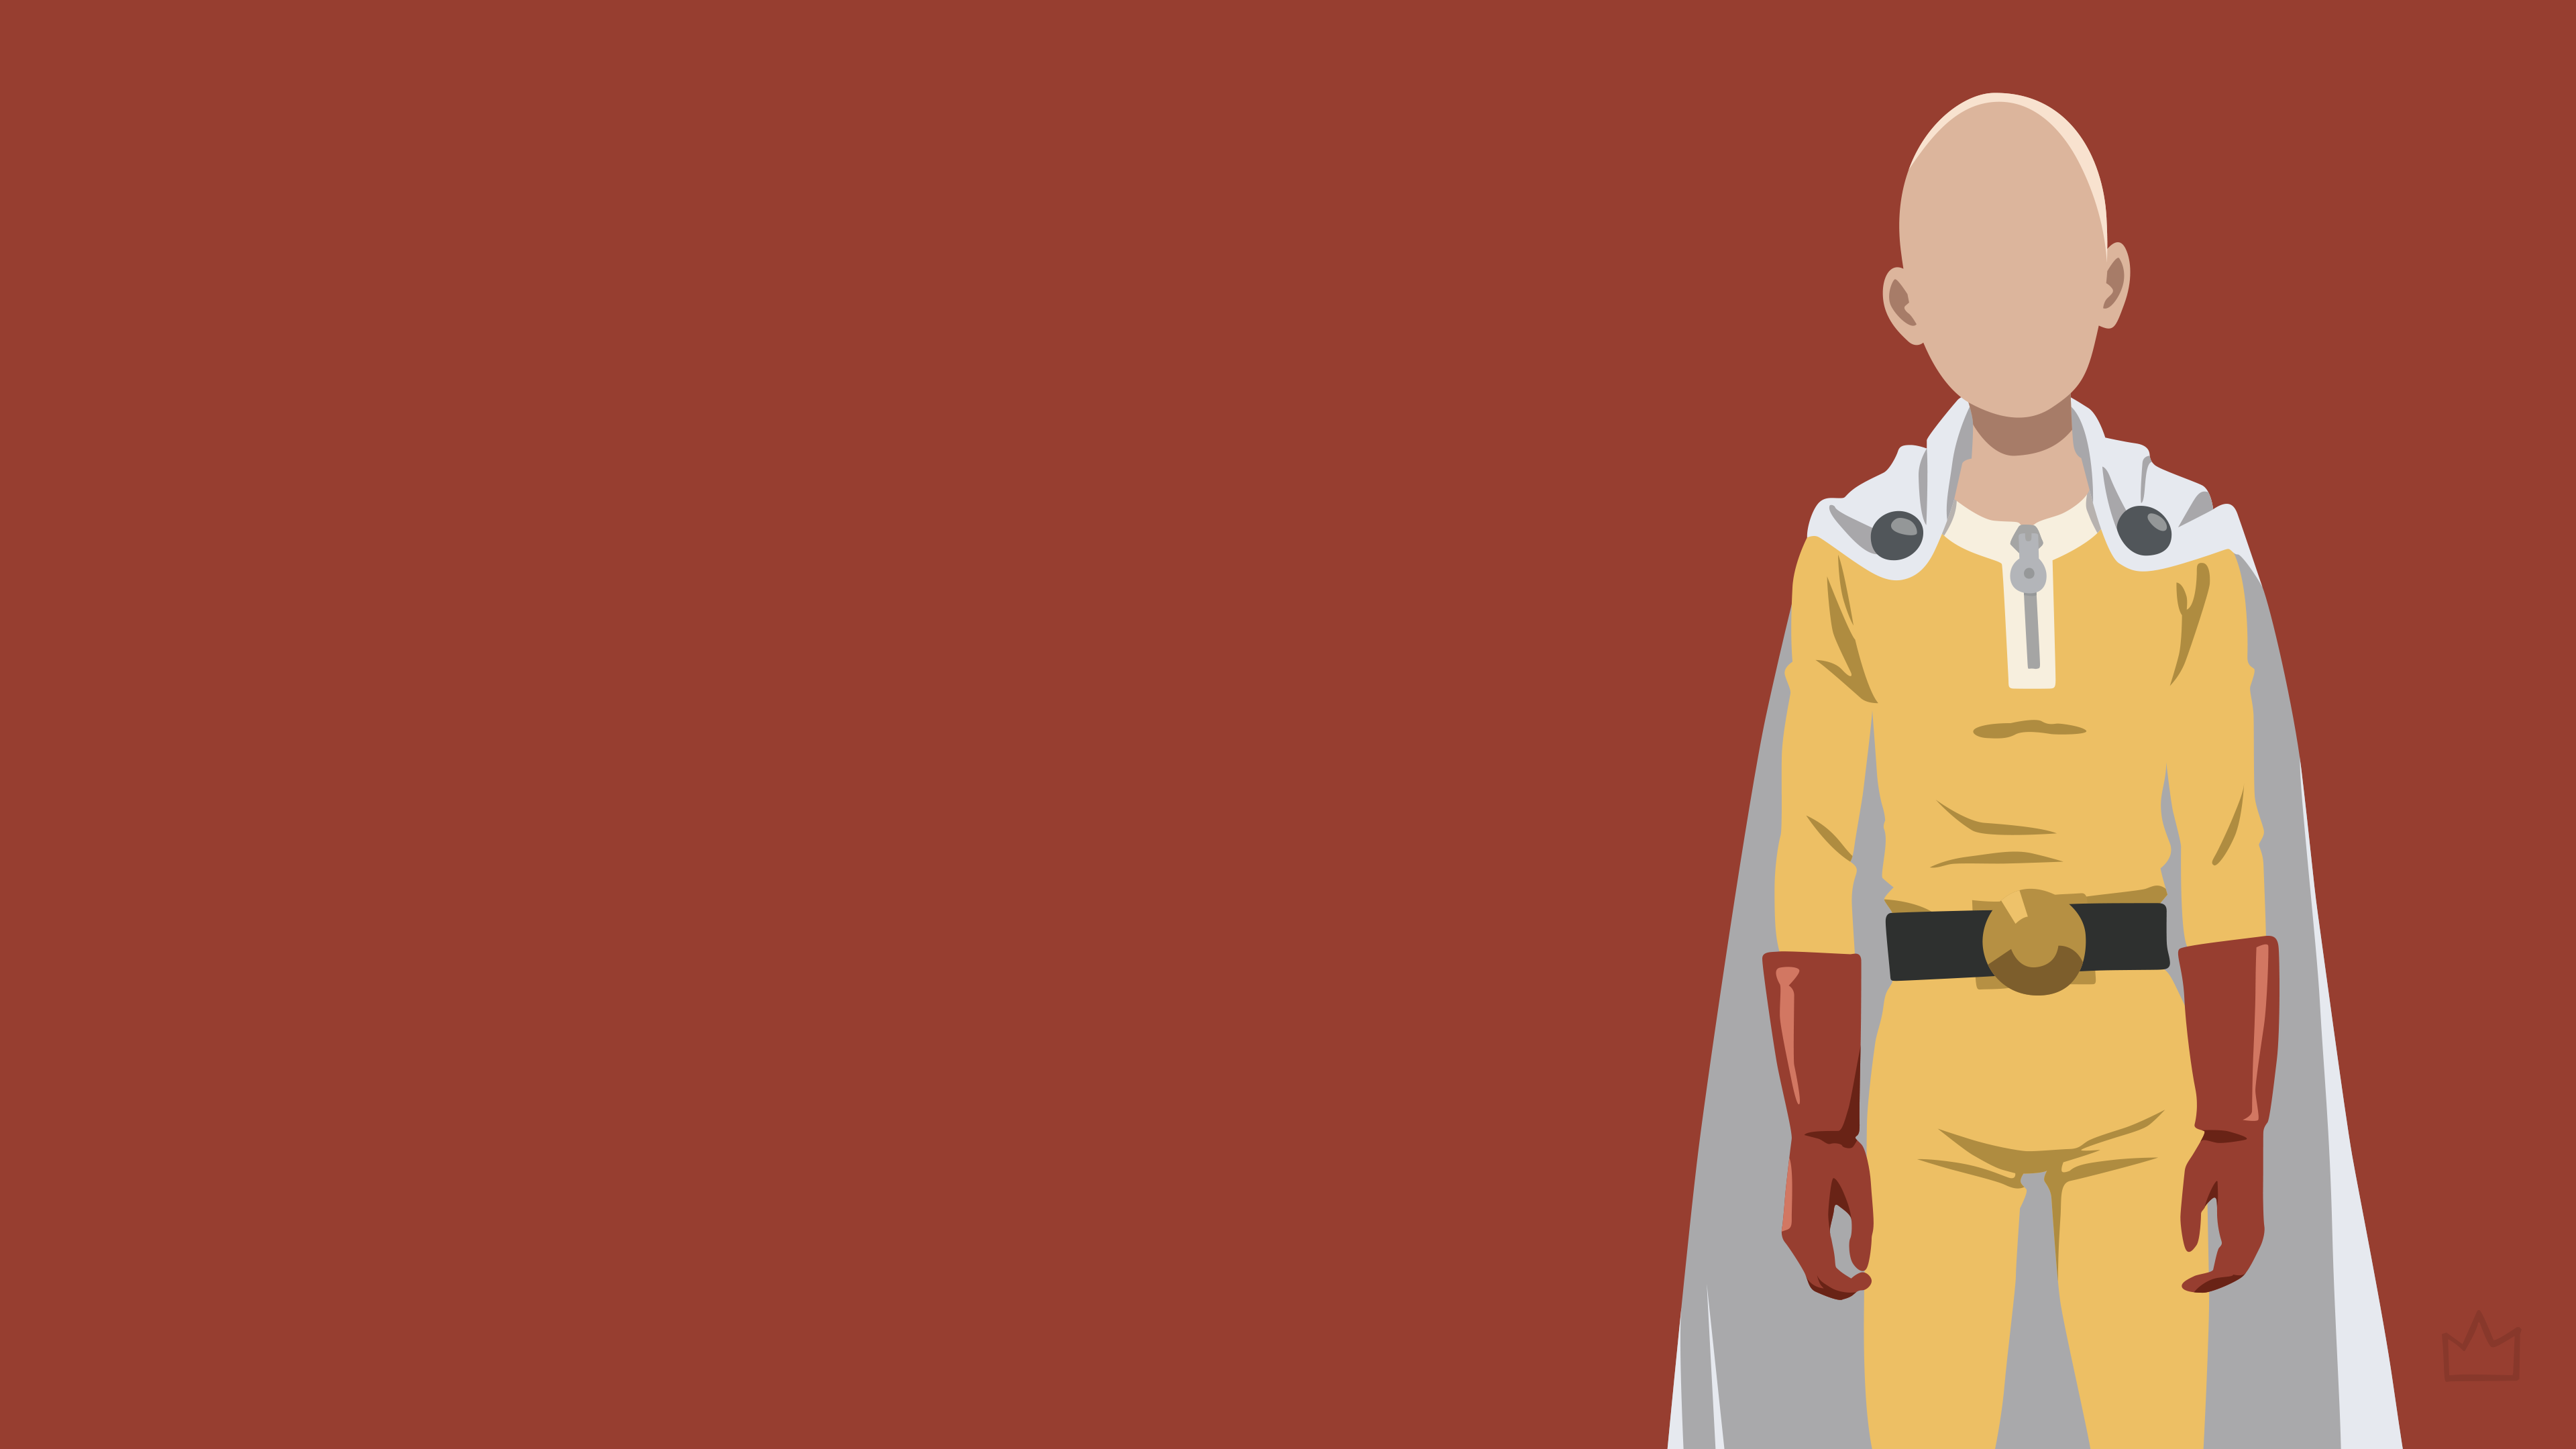 saitama__one_punch_man__by_klikster-d9g4pxa